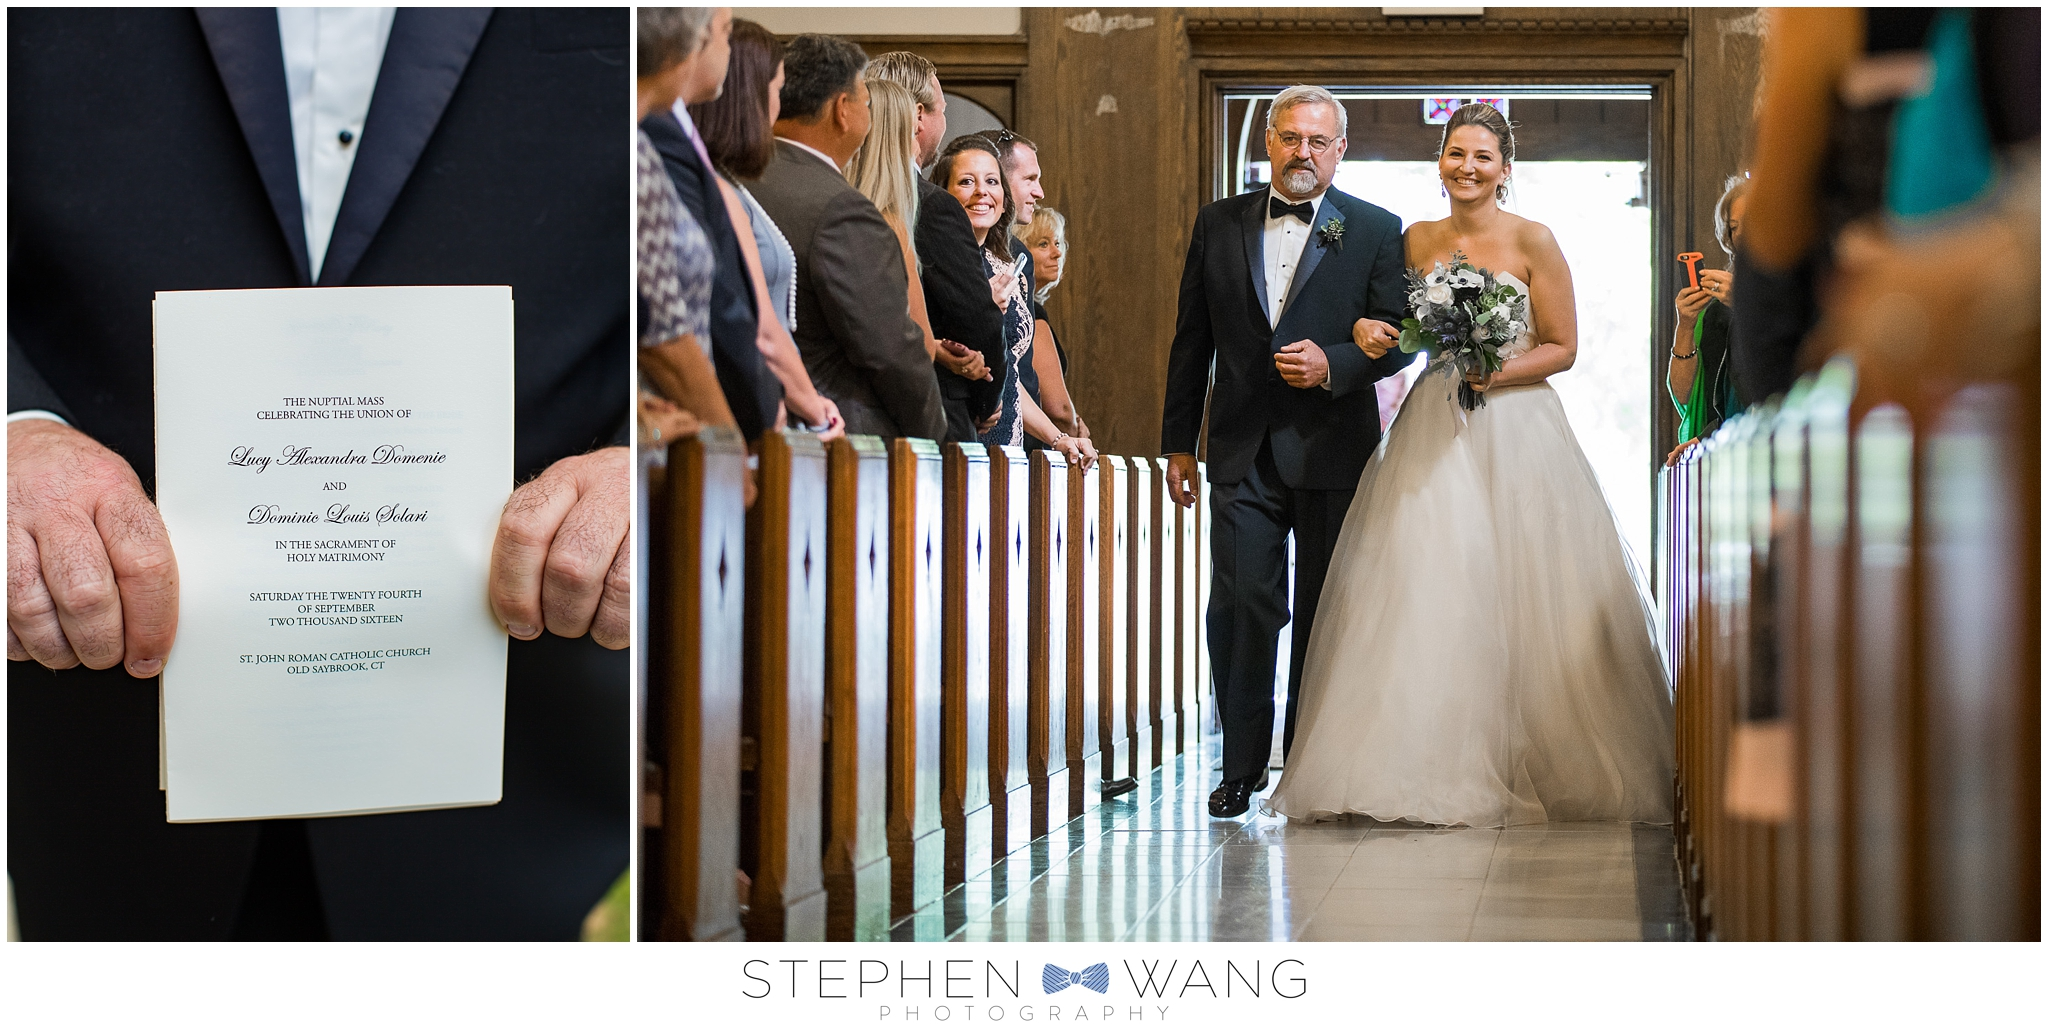 Stephen Wang Photography wedding photographer essex connecticut wedding connecticut photographer philadlephia photographer pennsylvania wedding photographer bride and groom essex yacht club nautical wedding00012.jpg